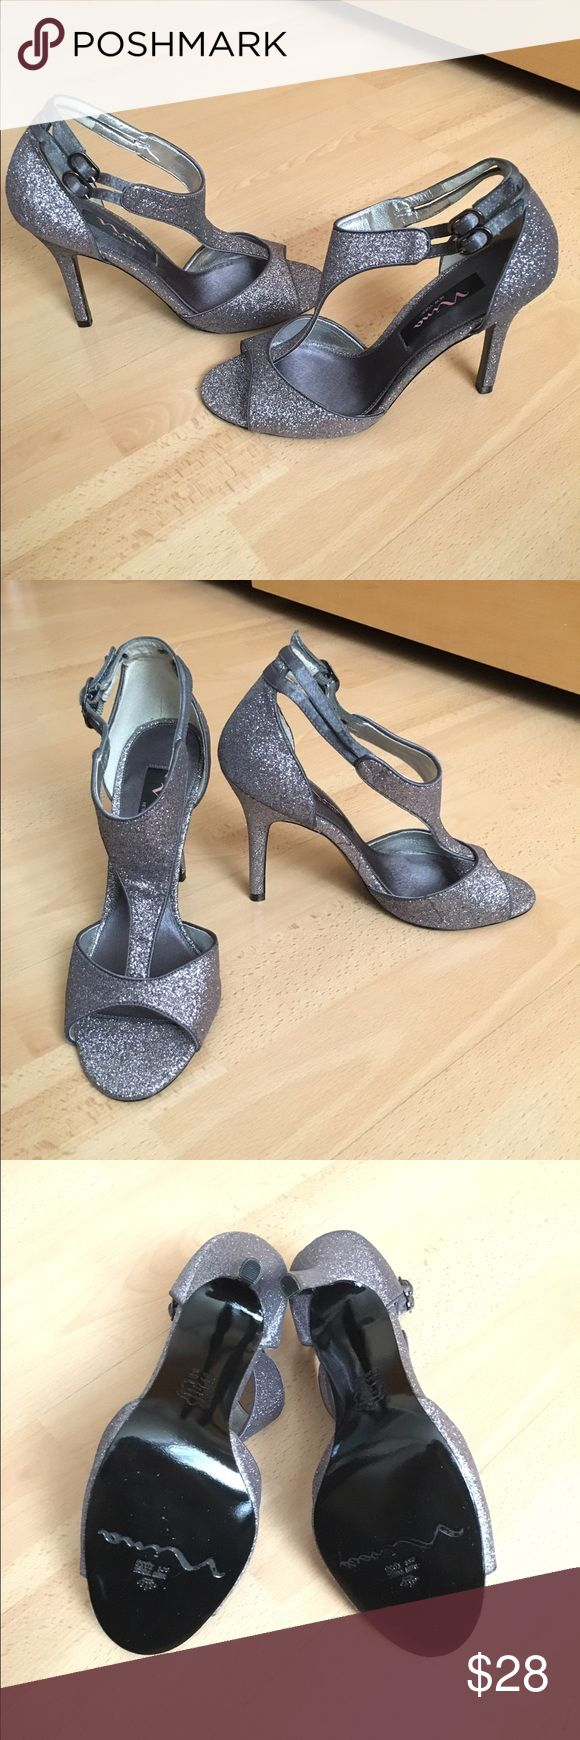 "Nina Glittery Lavender T-Strap Heels Brand new in box. These are a beautiful pair of heels! They are covered in silver, lilac, and lavender glitter. Great for a special occasion! The 3.5"" heel makes it fancy but still moderately comfortable. Because of the adjustable strap, could fit a size 5.5, 6, and even 6.5. I'm open to offers! Nina Shoes Heels"